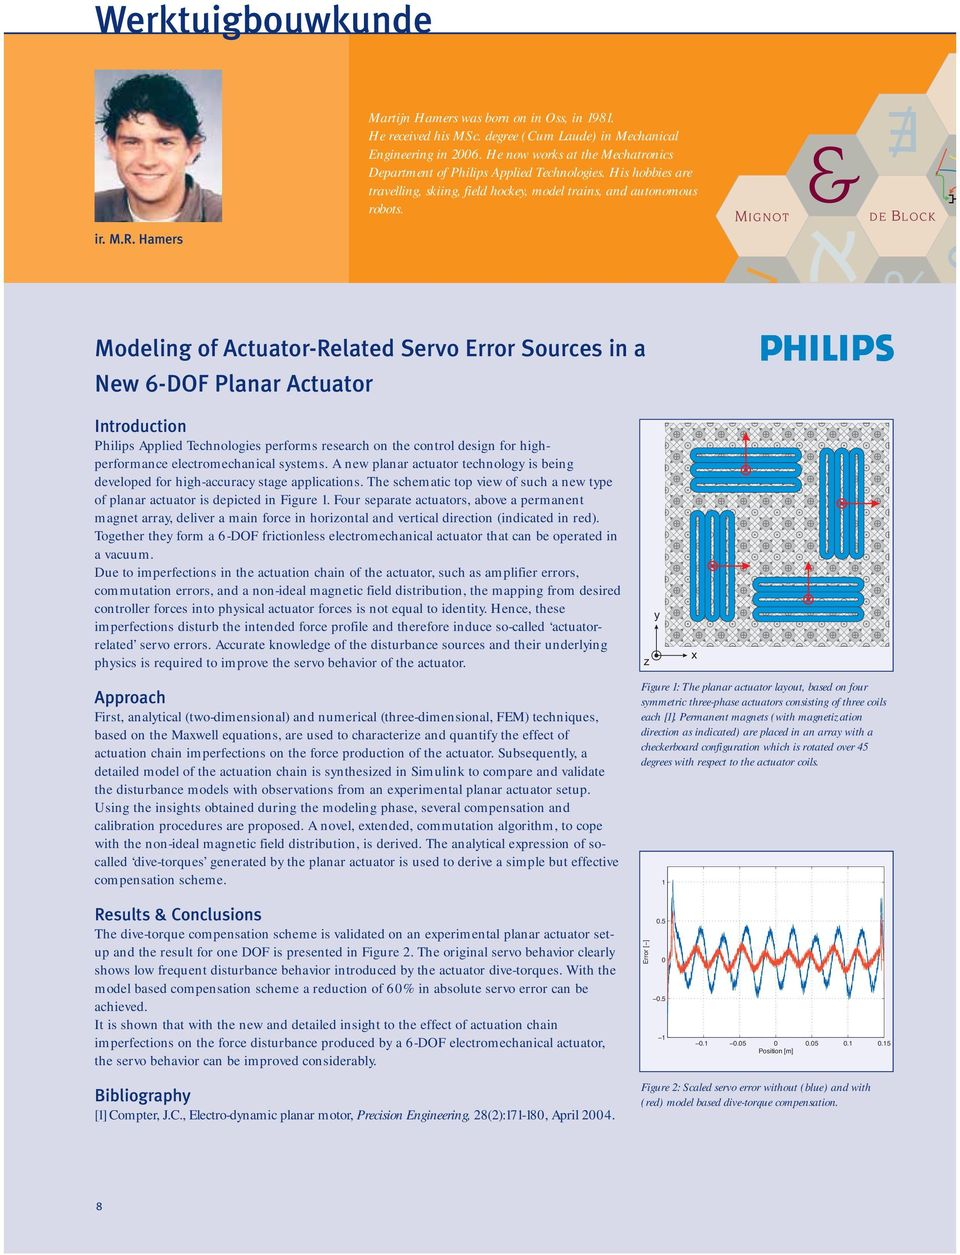 Modeling of Actuator-Related Servo Error Sources in a New 6-DOF Planar Actuator Introduction Philips Applied Technologies performs research on the control design for highperformance electromechanical